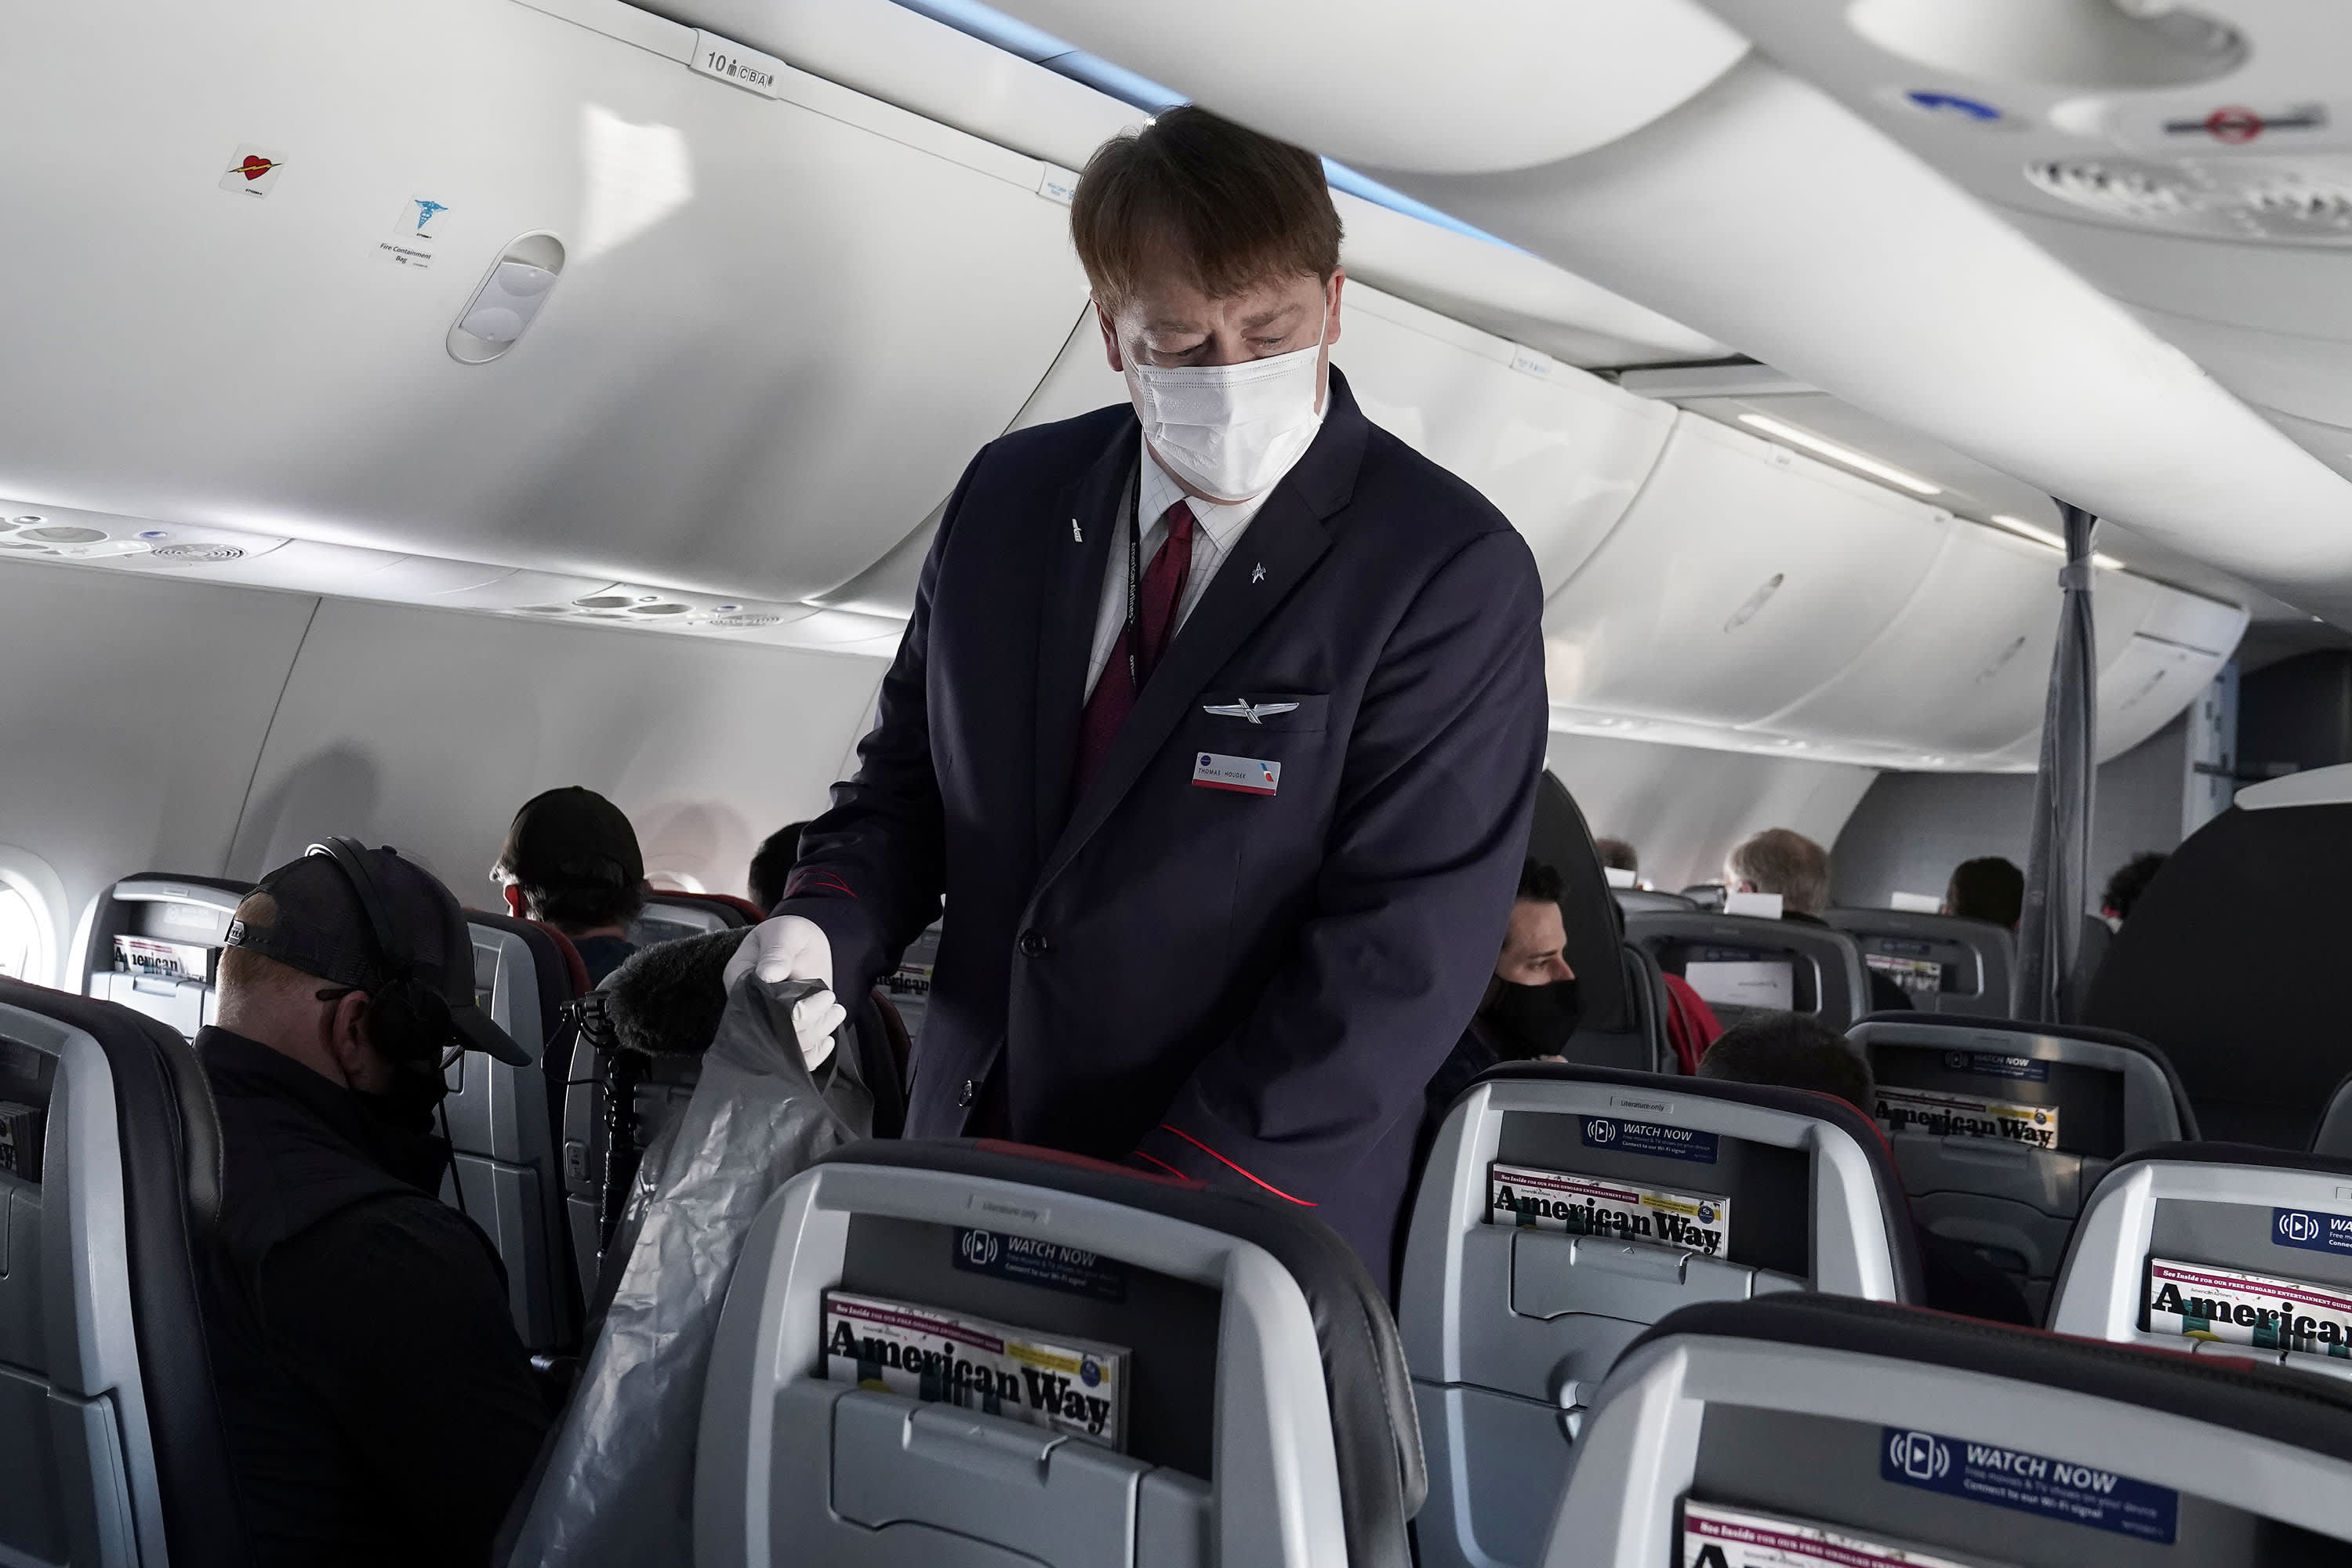 Unruly behavior from passengers has never been this bad ...